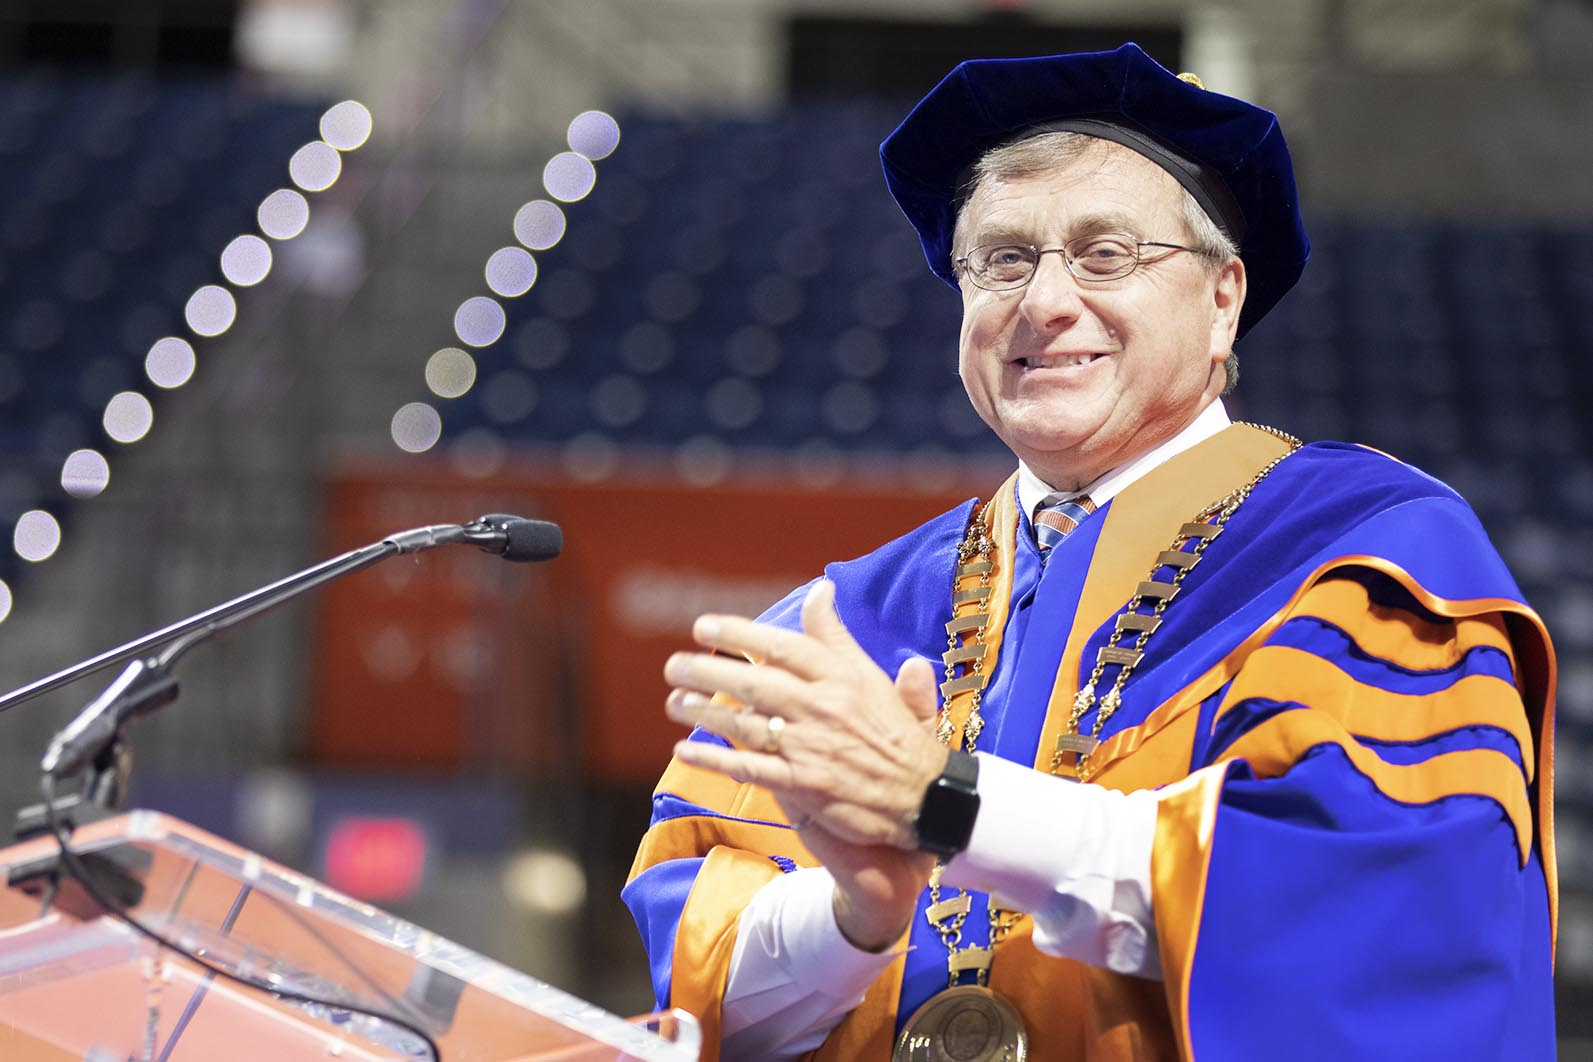 UF President Kent Fuchs' speech for Saturday's commencement ceremony